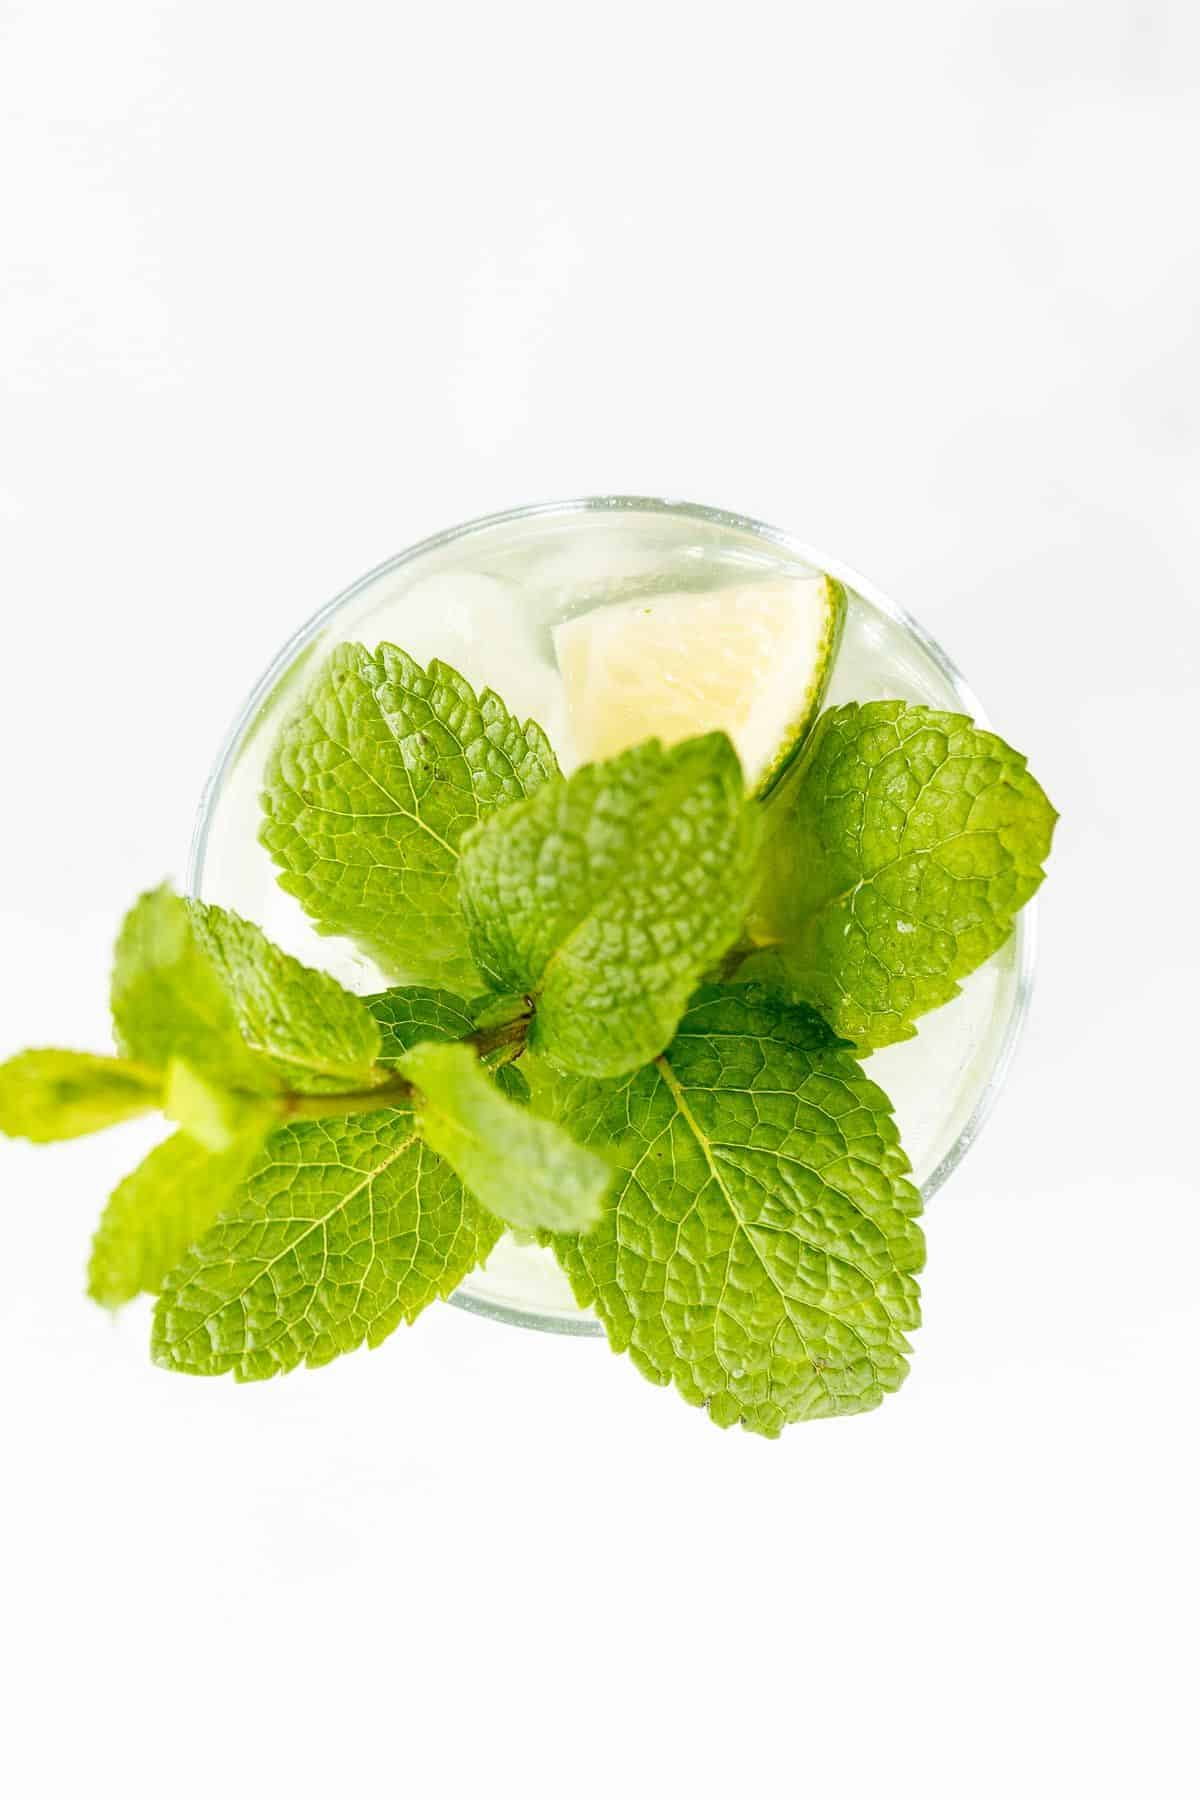 Looking down into a clear glass topped with a stem of mint and a wedge of lime.